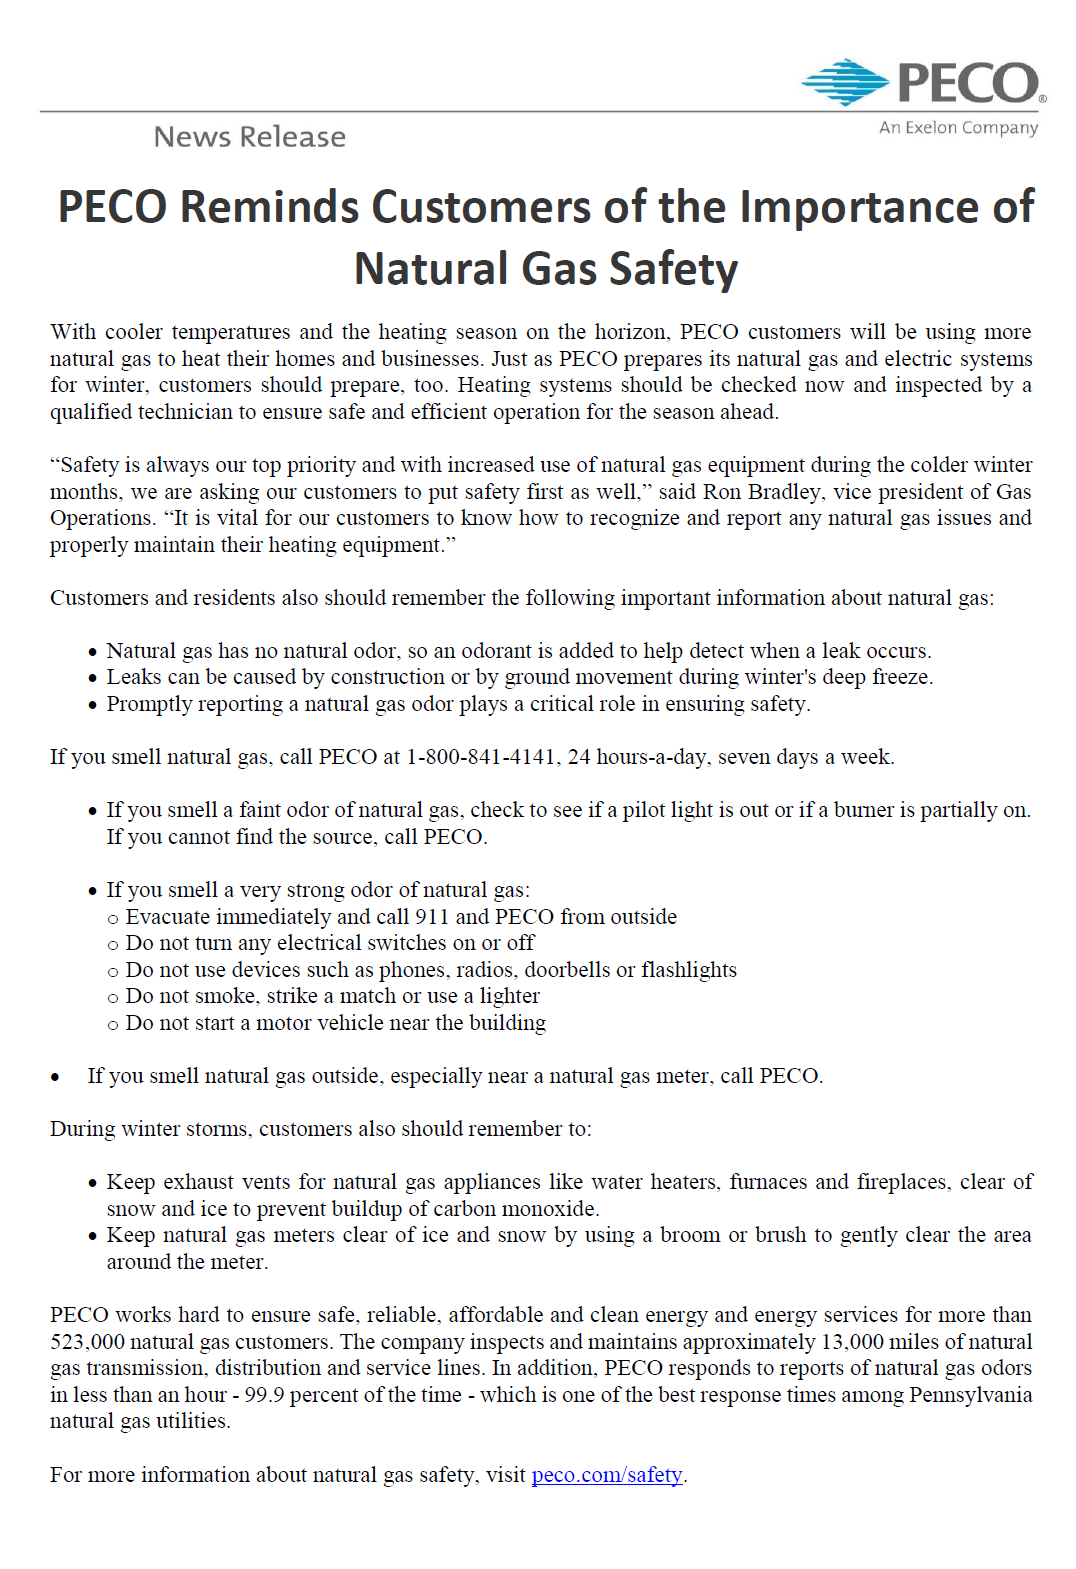 PECO Safety Reminder